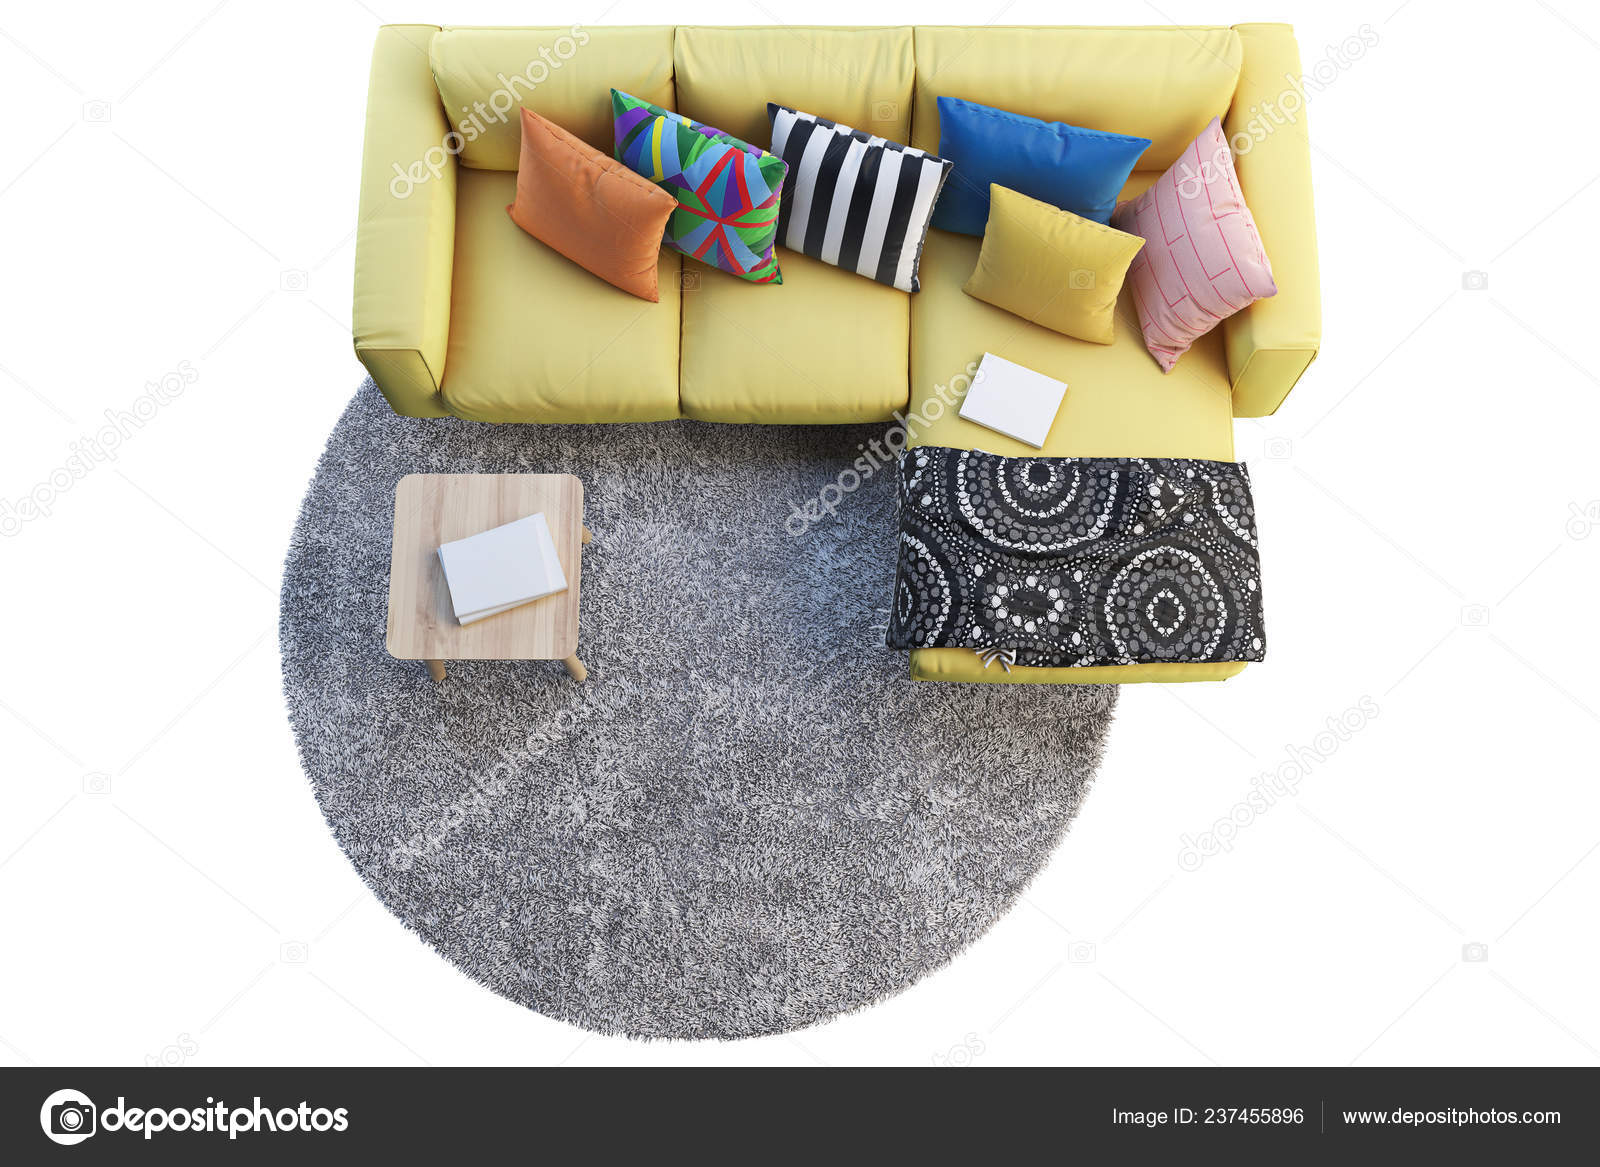 Render Yellow Fabric Sofa Chaise Lounge Gray Rug Wooden